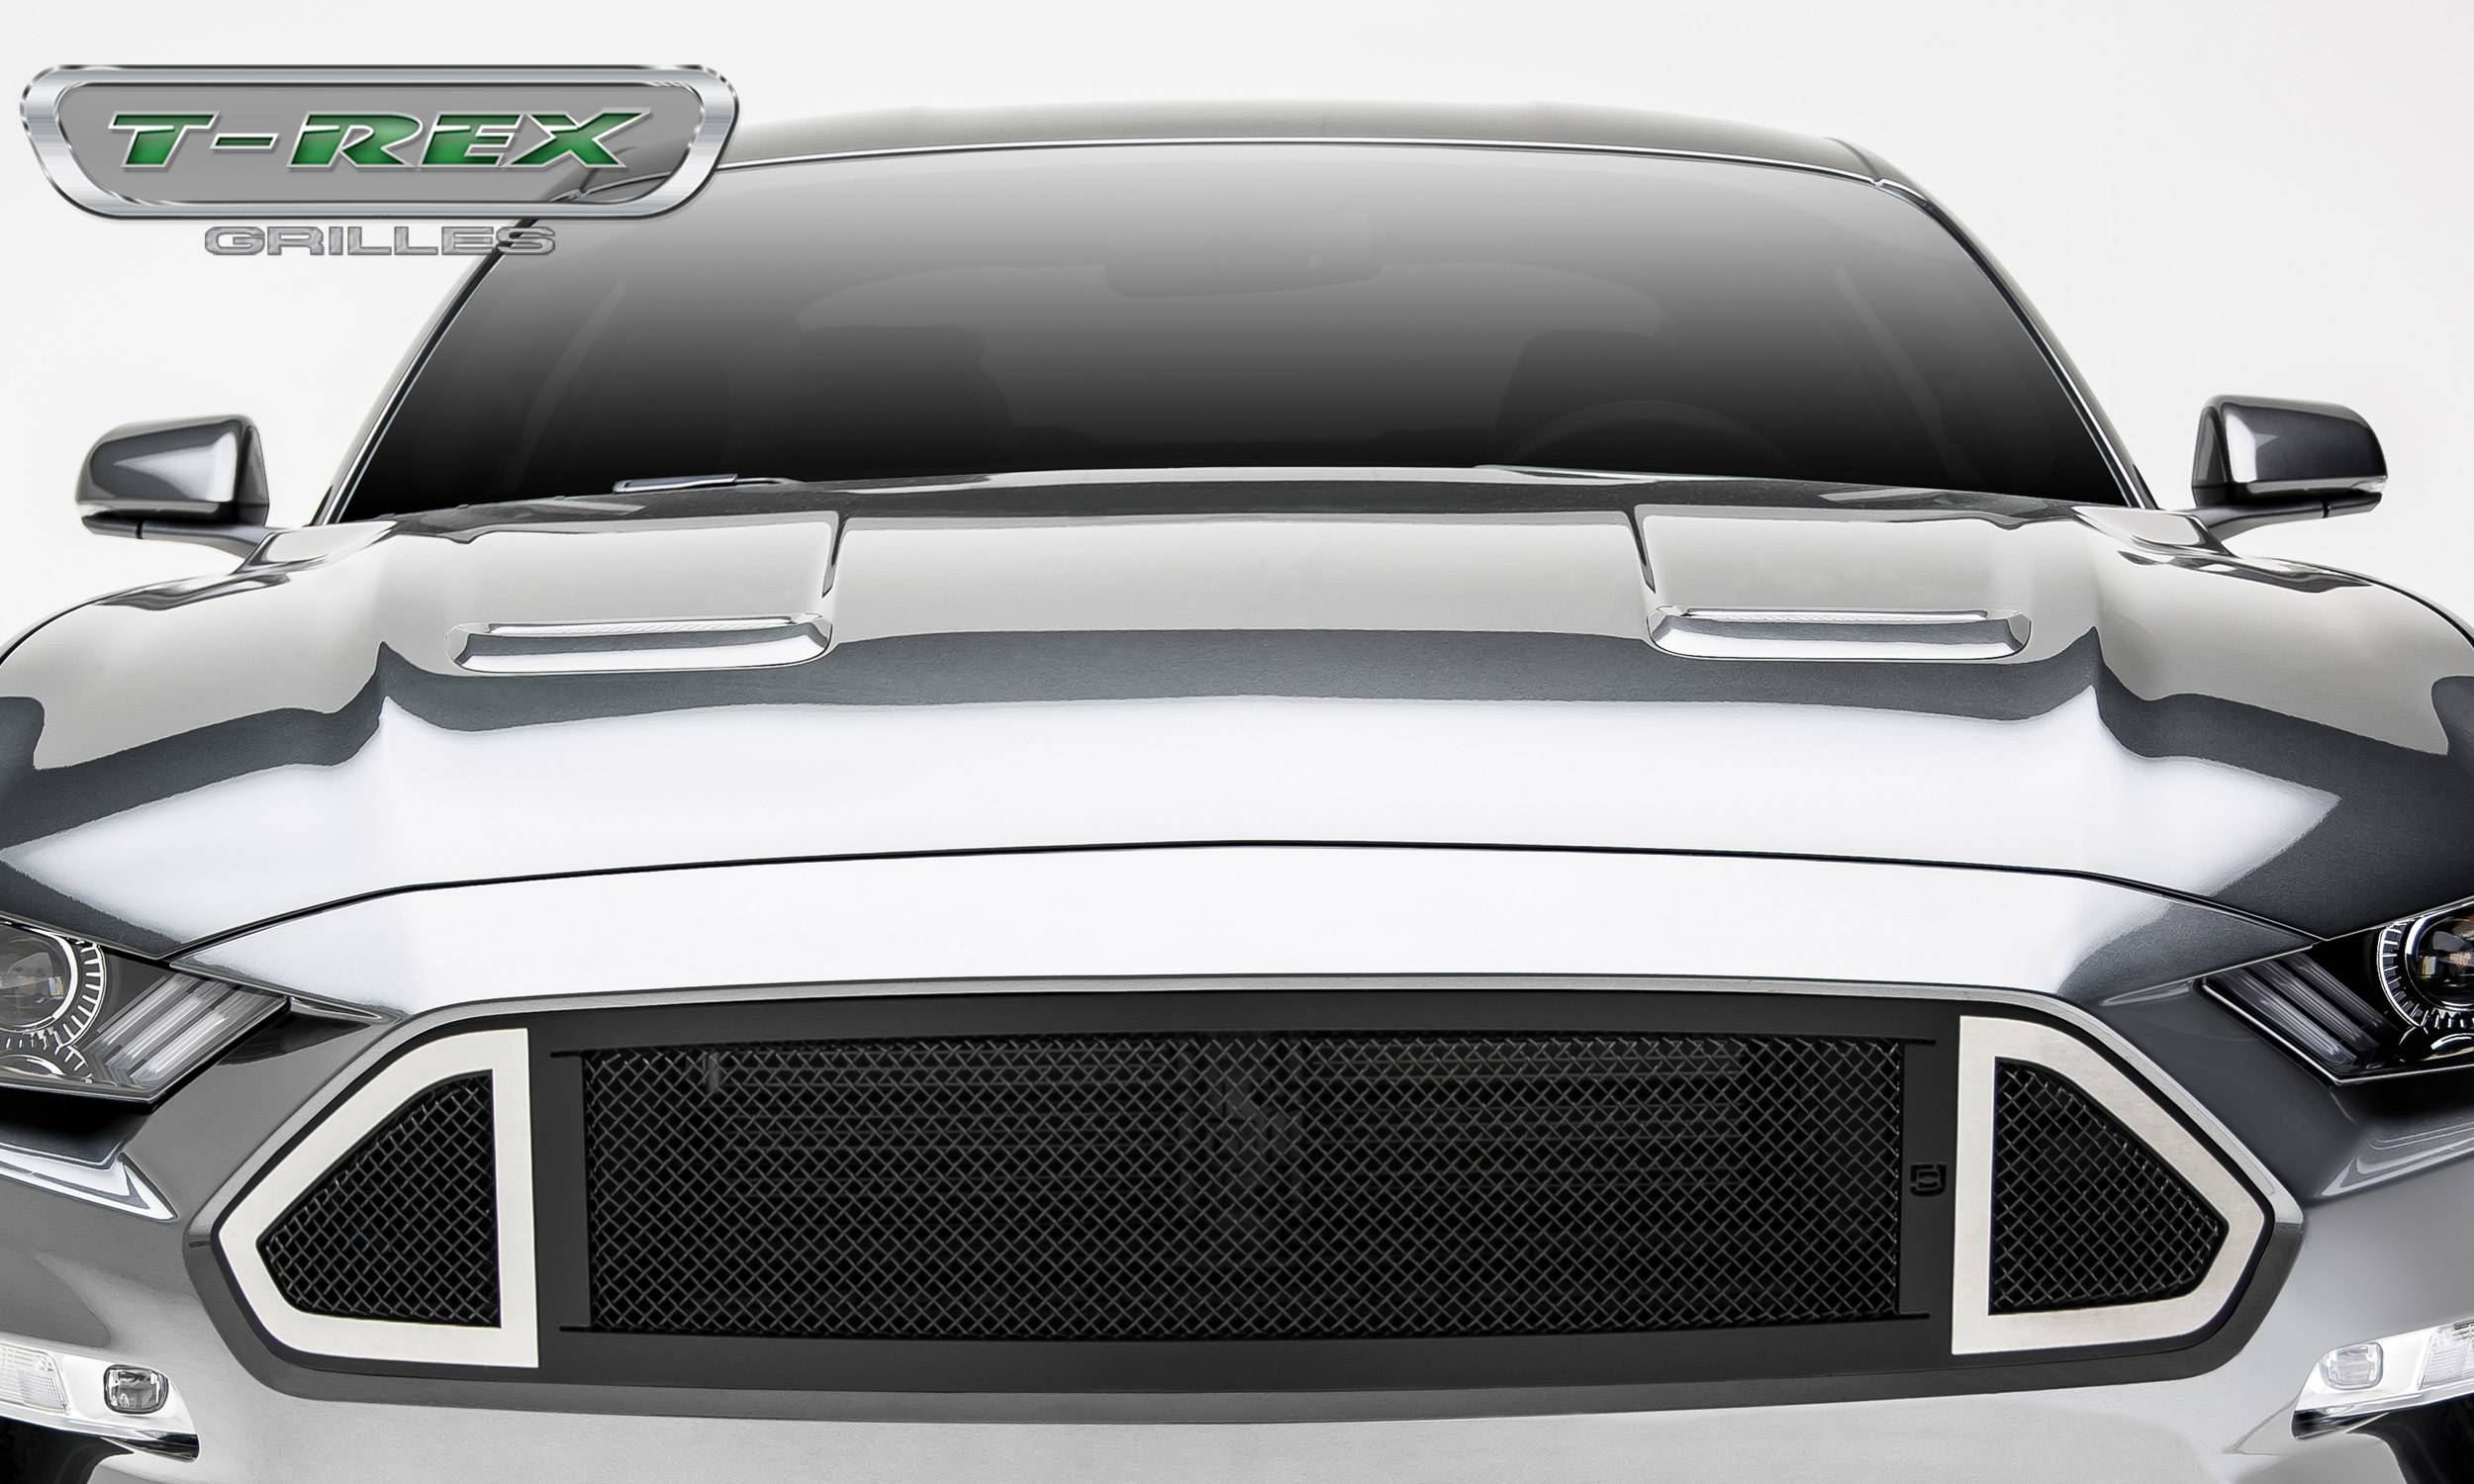 2018 Mustang DJ Series Main Grille insert Black with Stainless Accent Trim #DJ10550